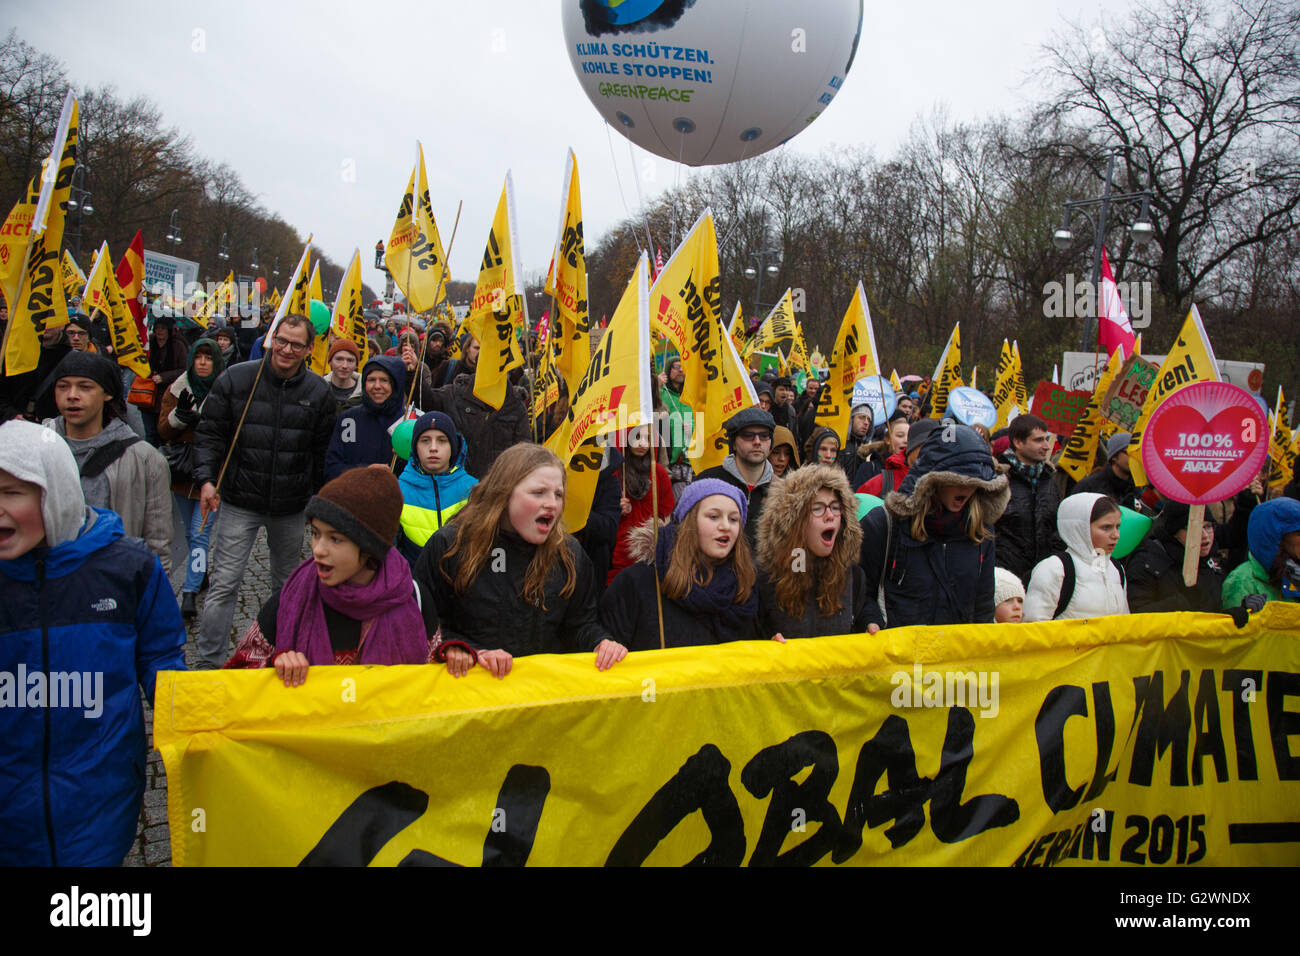 29.11.2015, Berlin, Berlin, Germany - Demonstration Global Climate March in the government district, on the occasion Stock Photo